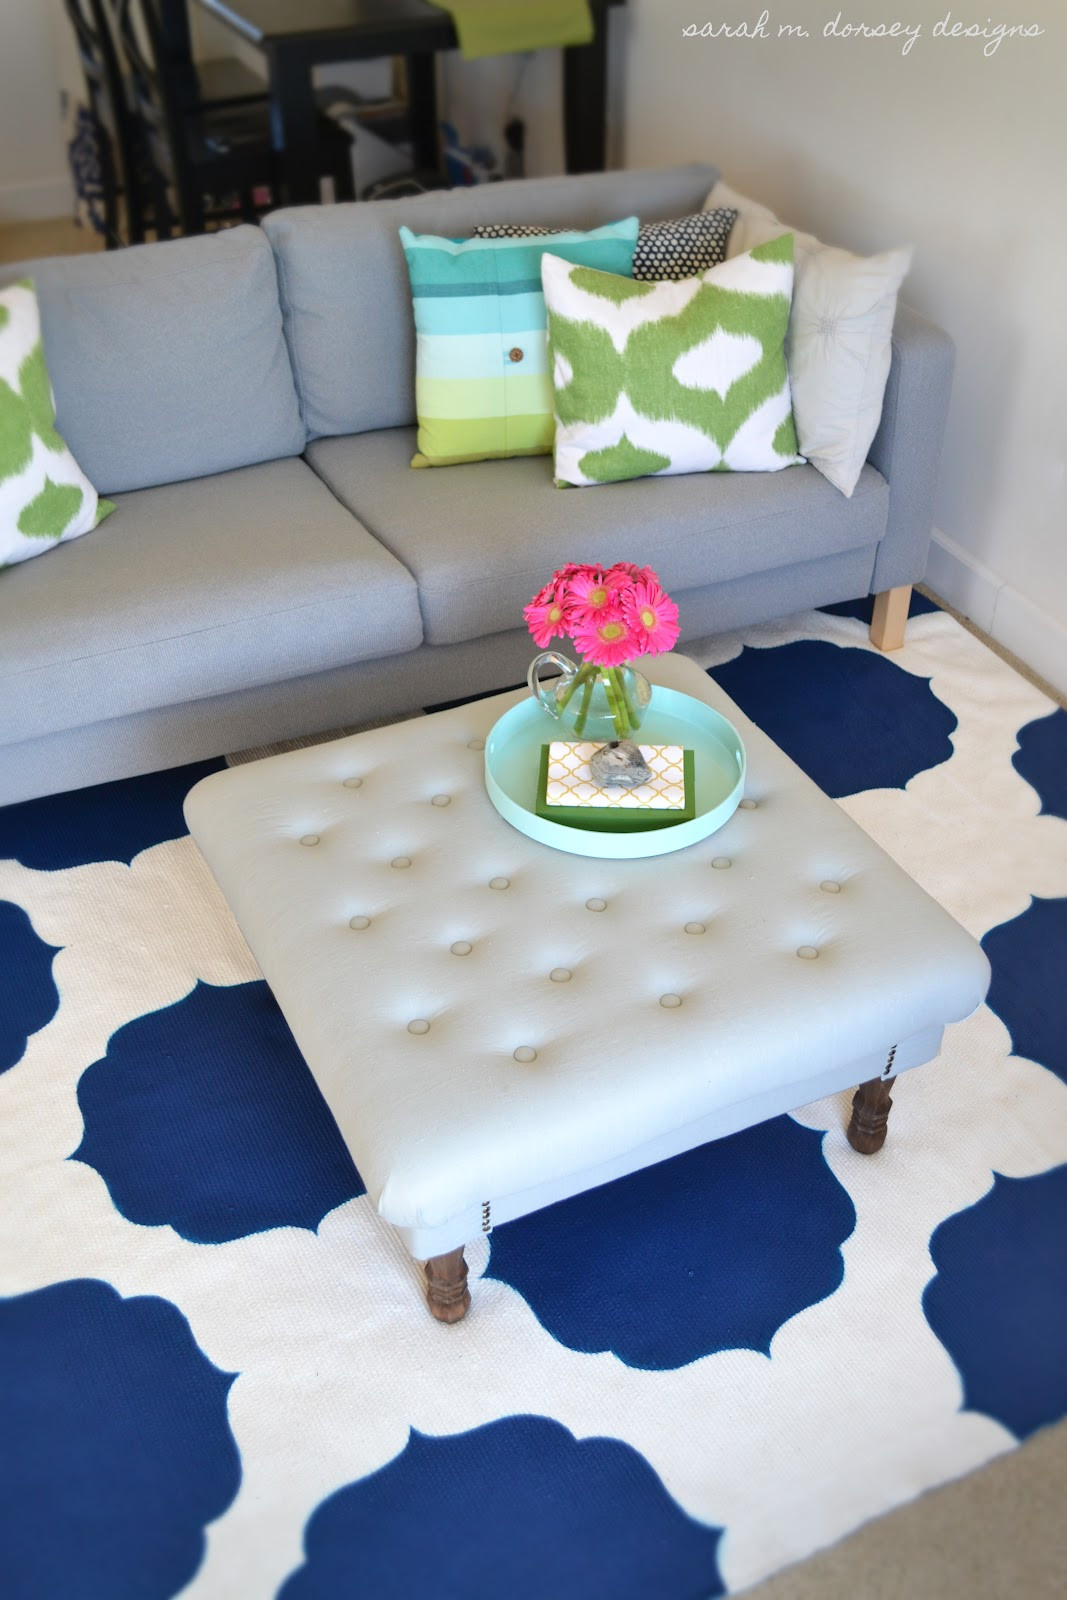 Best ideas about DIY Painted Rug . Save or Pin sarah m dorsey designs diy painted morrocan rug finished Now.